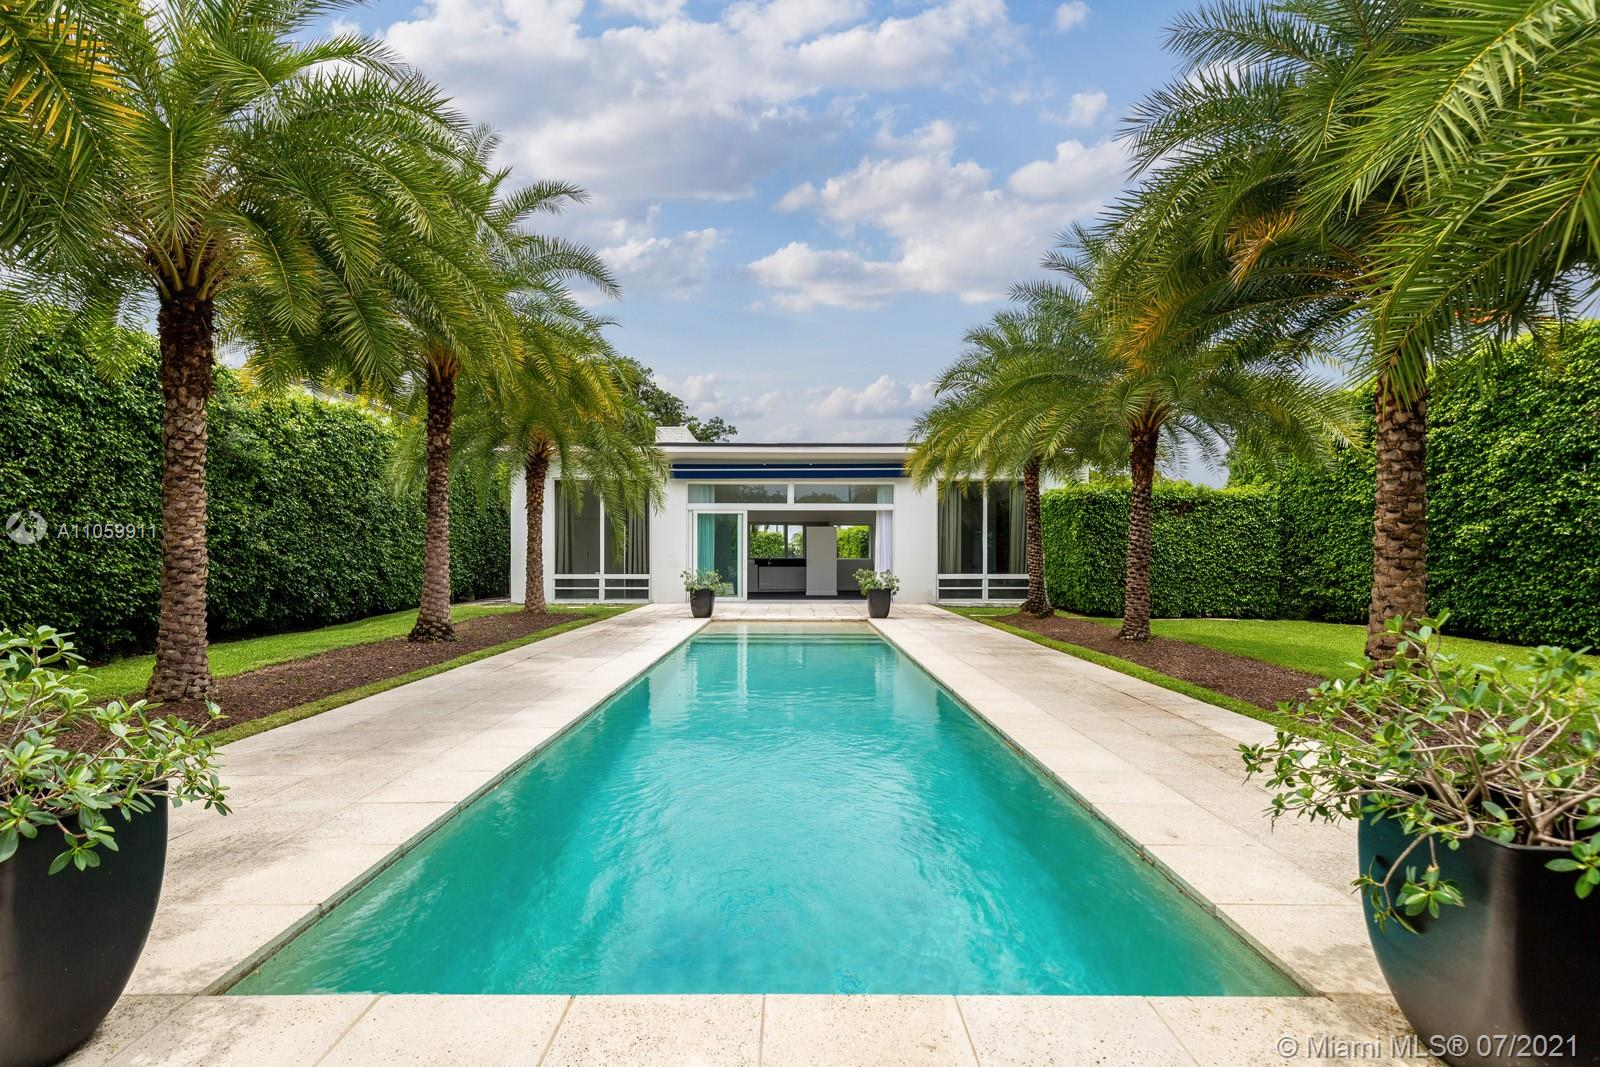 Igor Polevitzky's Heller House 1, a pure example of  what was to become Miami Modern .  Recently updated, this cozy loft style home maintains most of its MiMo details.  High ceilings, brick walls and expansive 13' windows open to a spacious back yard with a Tropical Setting complete with Royal Palms flanking a large 12 x 40 pool. Two spacious bedrooms each with an on suite bathroom, one car garage complete this Venetian Islands home. Located on N Venetian Dr on a 9,000 Square Feet Lot with plenty of room to add on or build your dream home with unobstructed bay views from your future second floor or rooftop terrace.